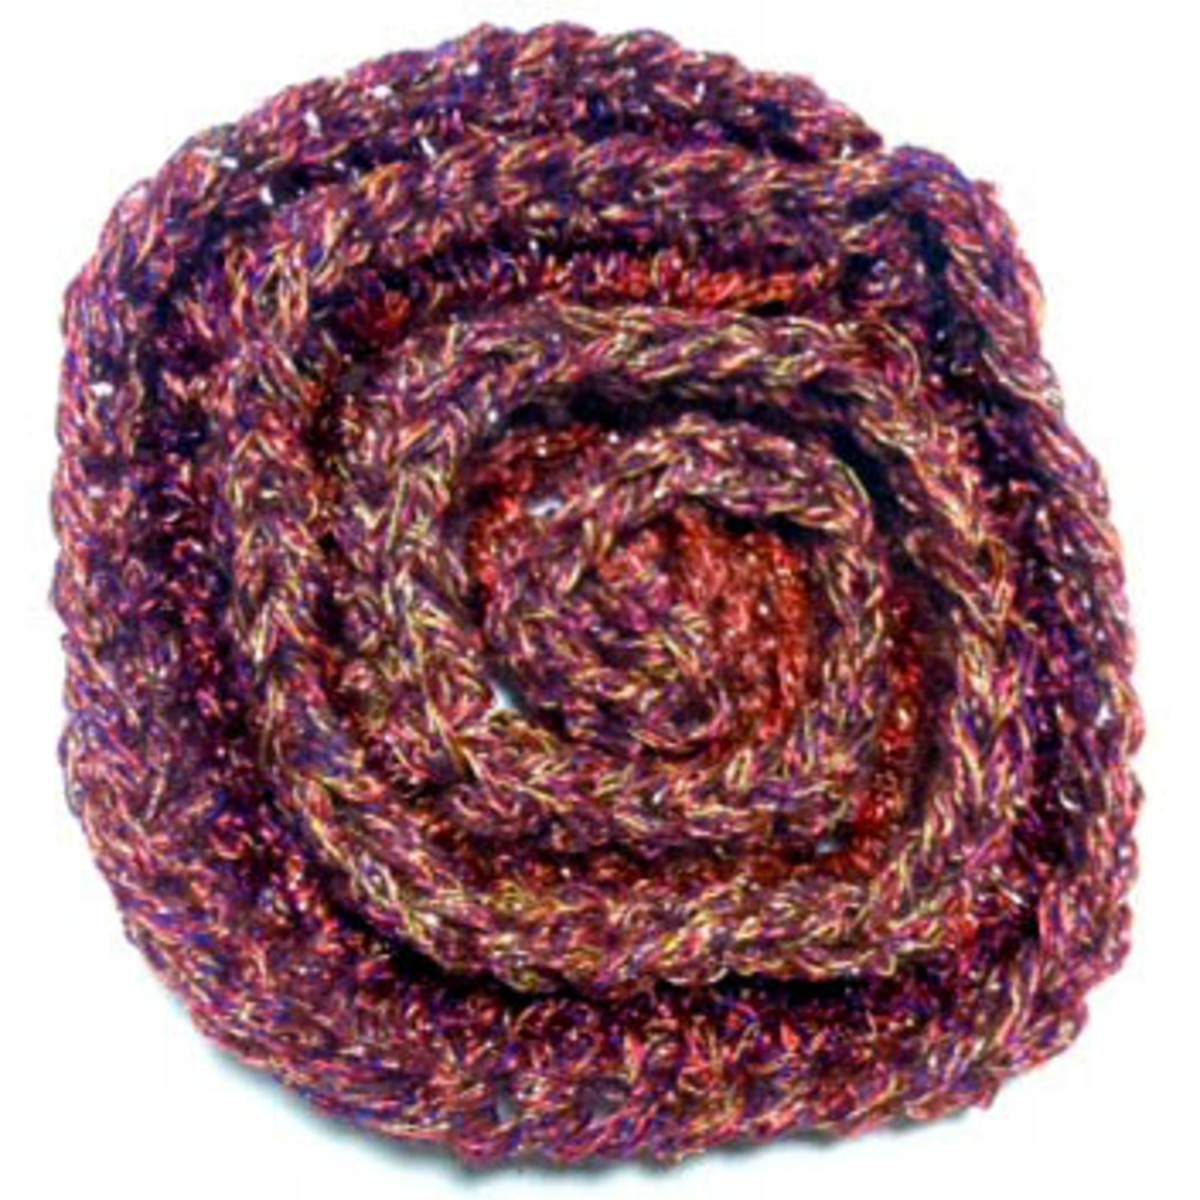 Free Crochet Pattern Rose Field : Crochet Pattern: Gradient of Spirals Flower Blanket hubpages